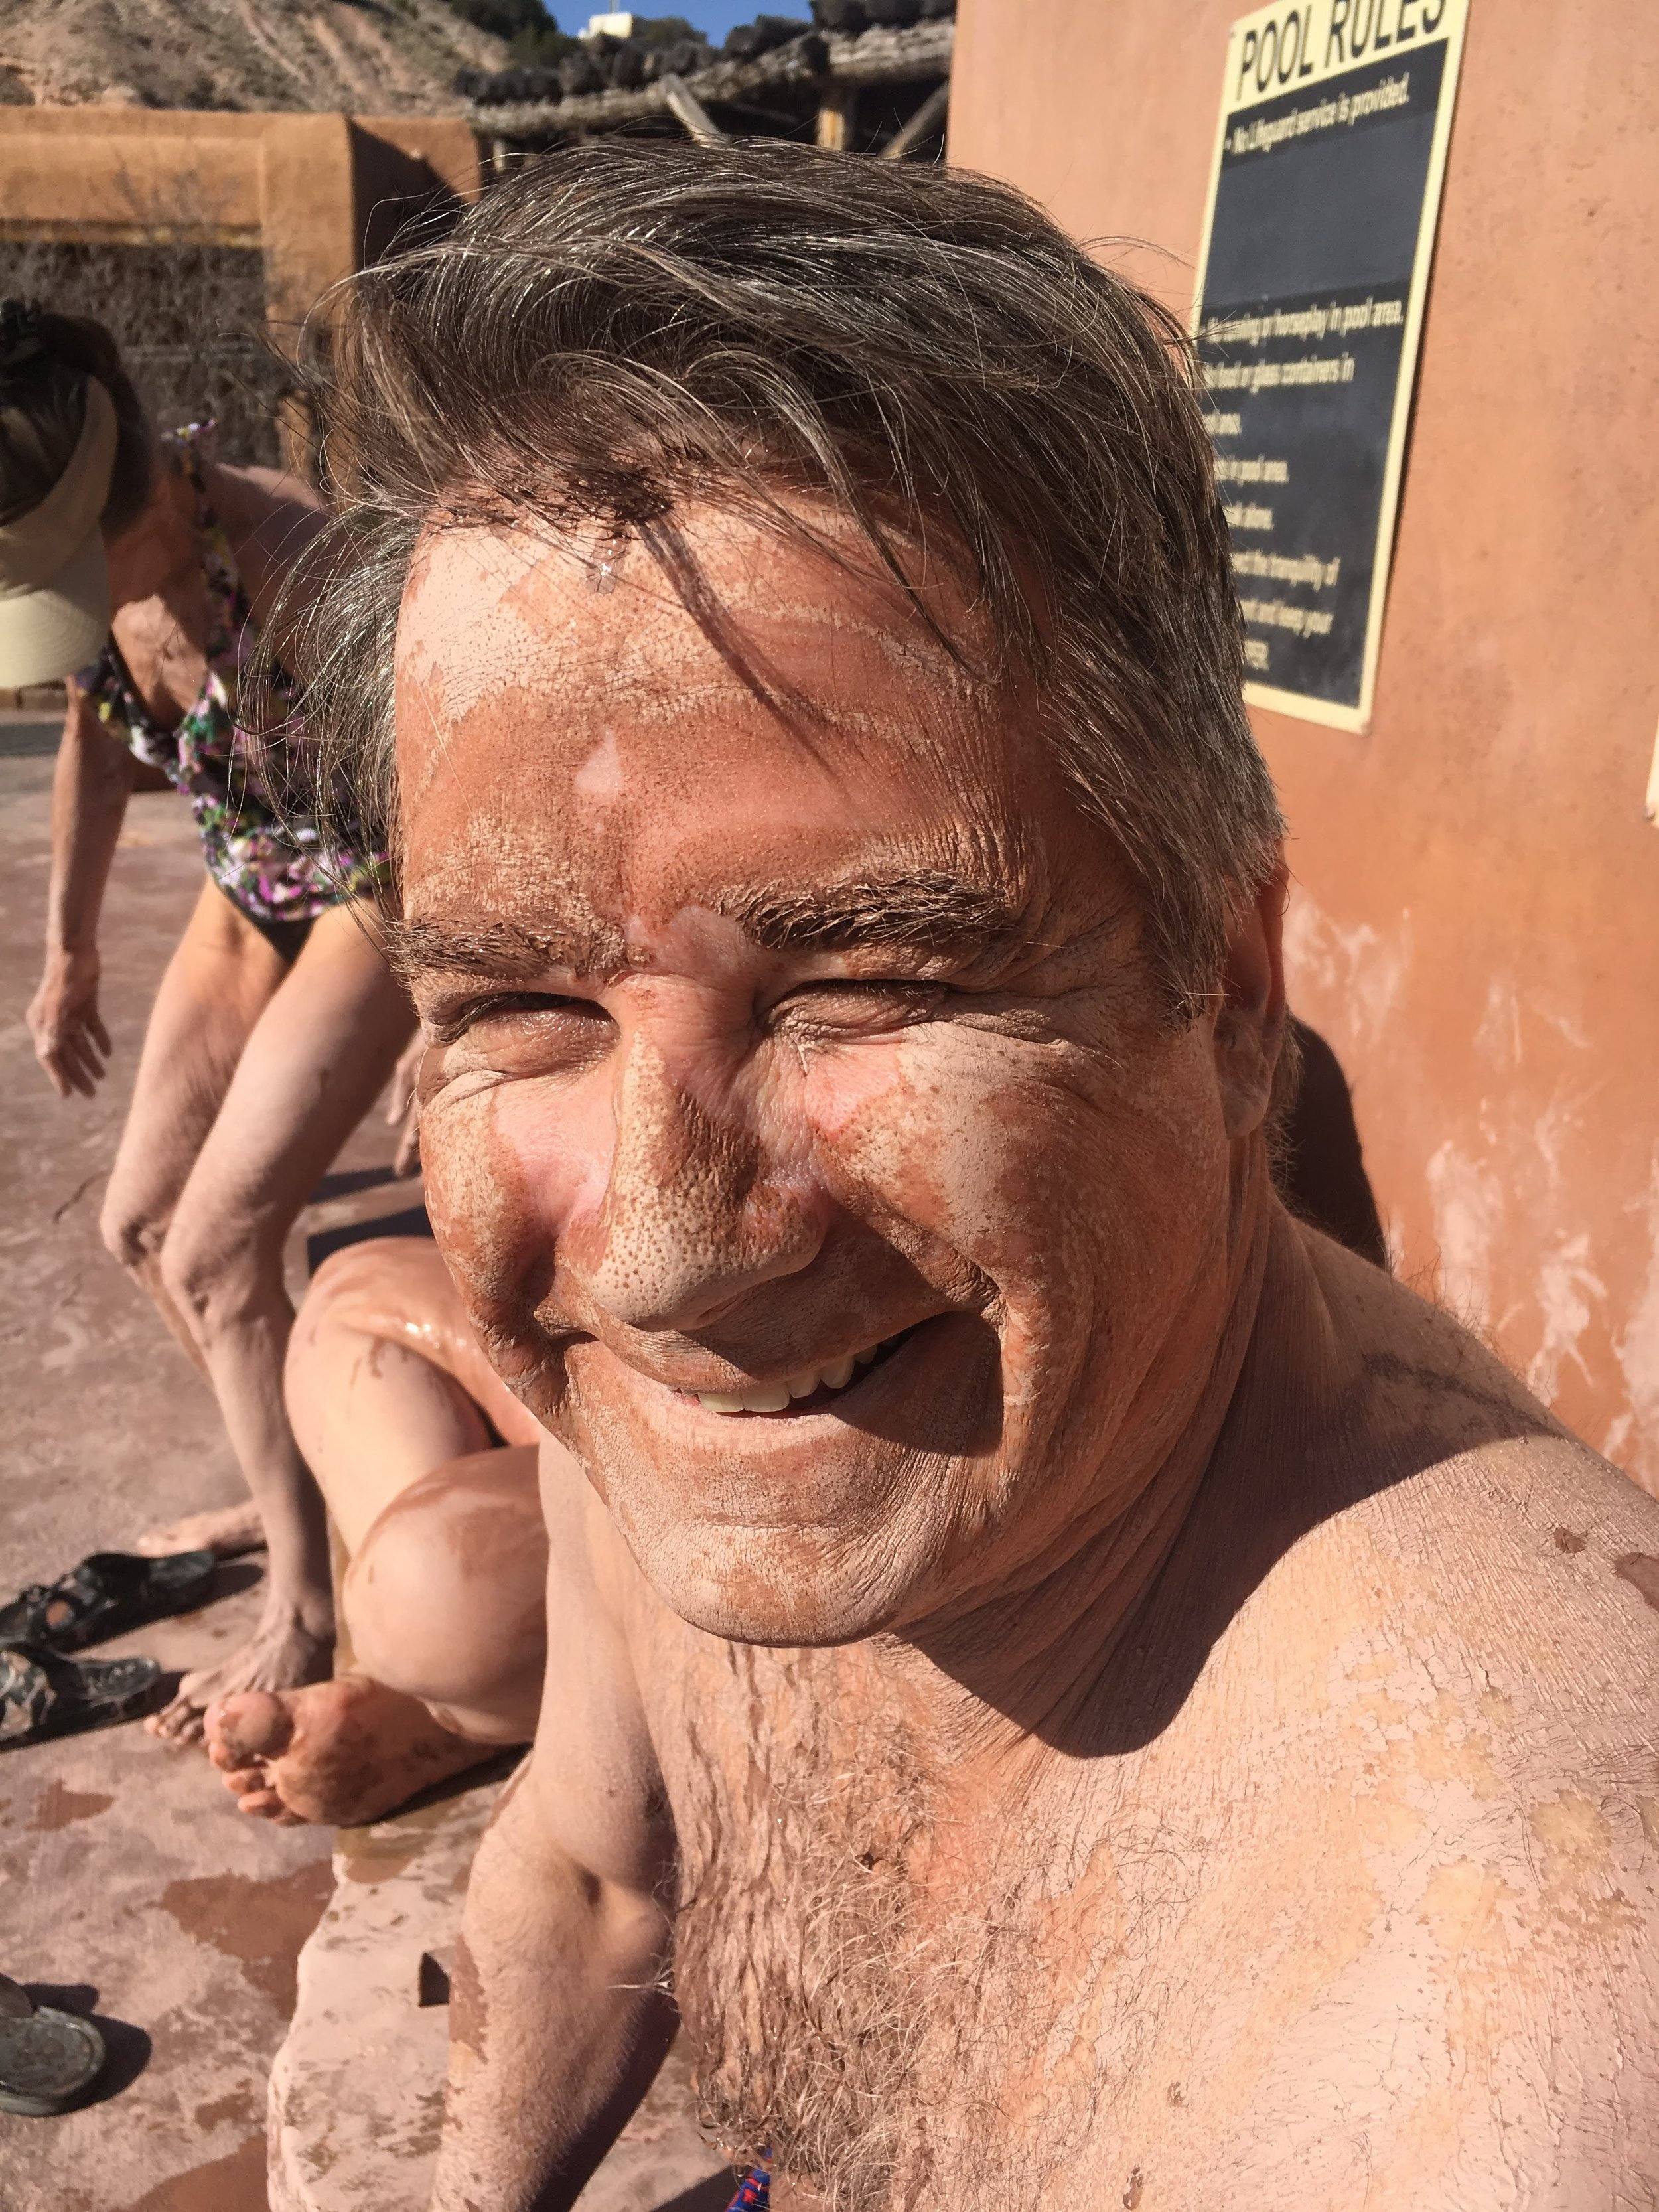 The famous mud of ojo caliente